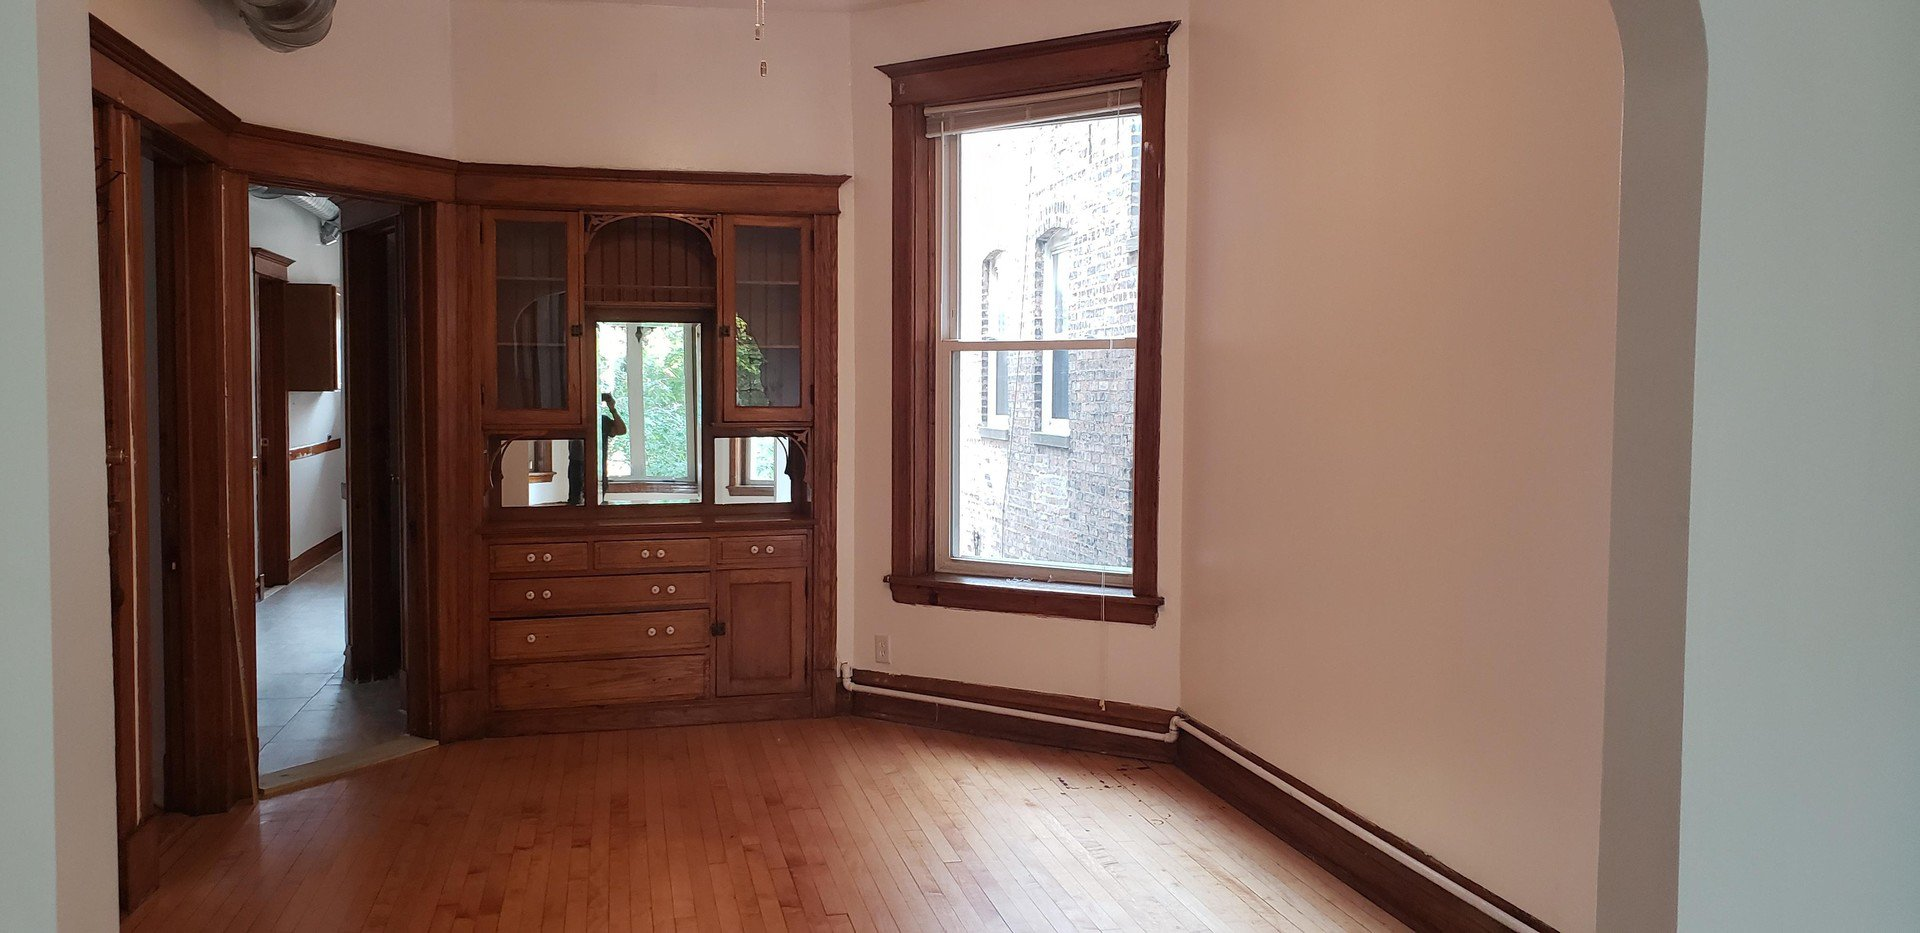 Photo 4: Photos: 2715 Evergreen Avenue Unit 2 in Chicago: CHI - West Town Residential Lease for lease ()  : MLS®# MRD10877768